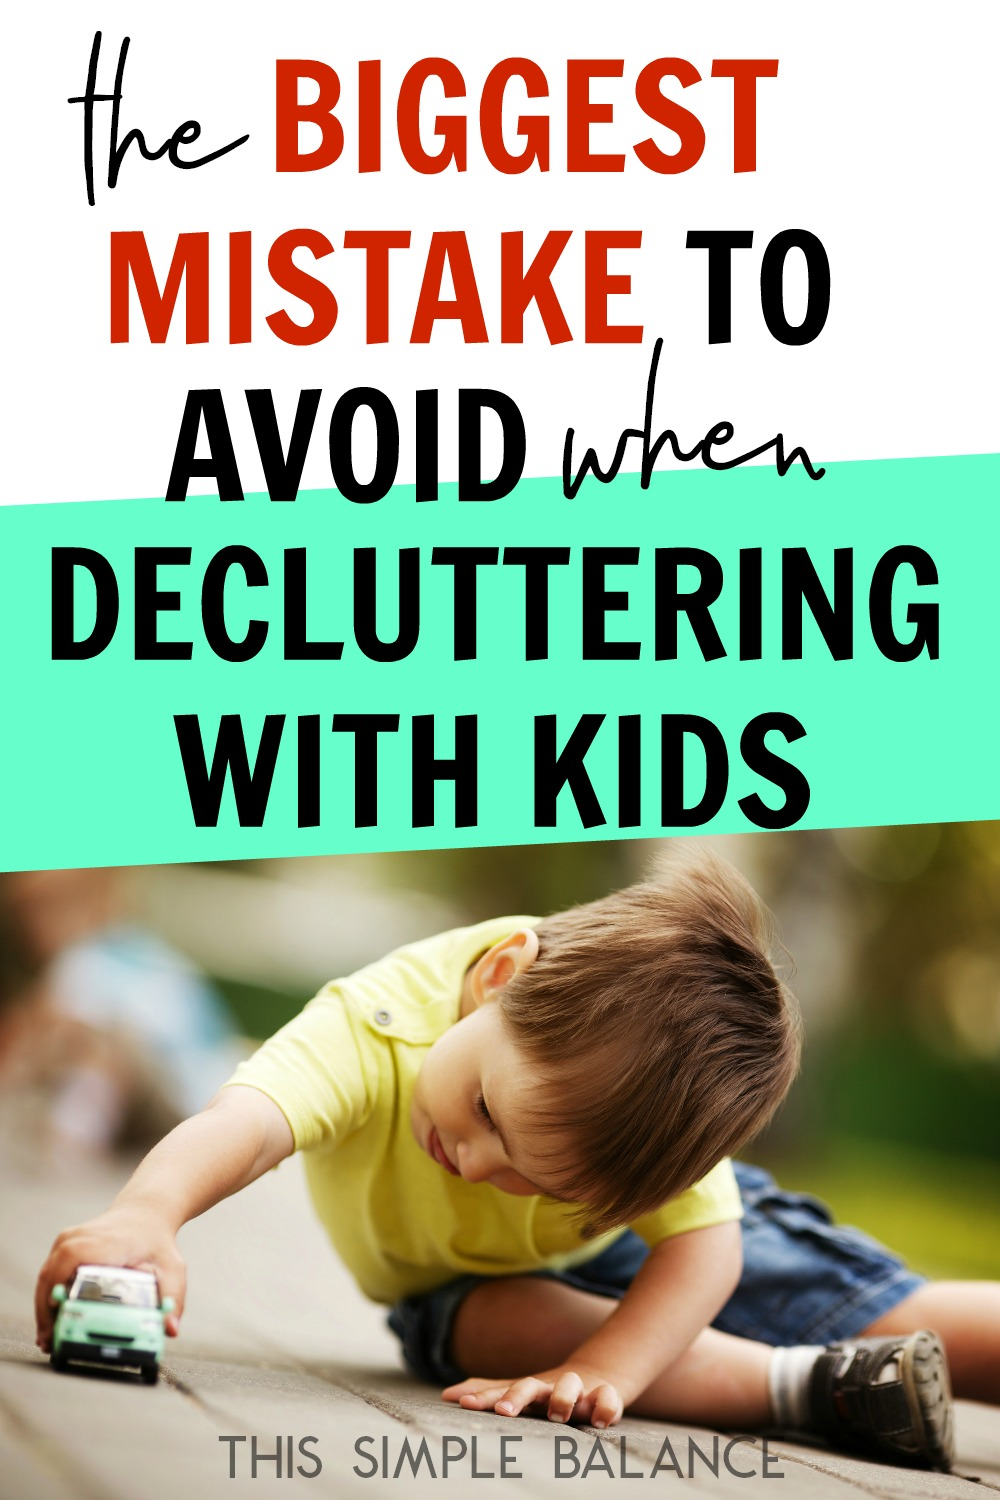 Decluttering with Kids can be tricky, but if you want to succeed long-term with decluttering and raising minimalist kids, be sure to avoid this mistake thats so easy to make.